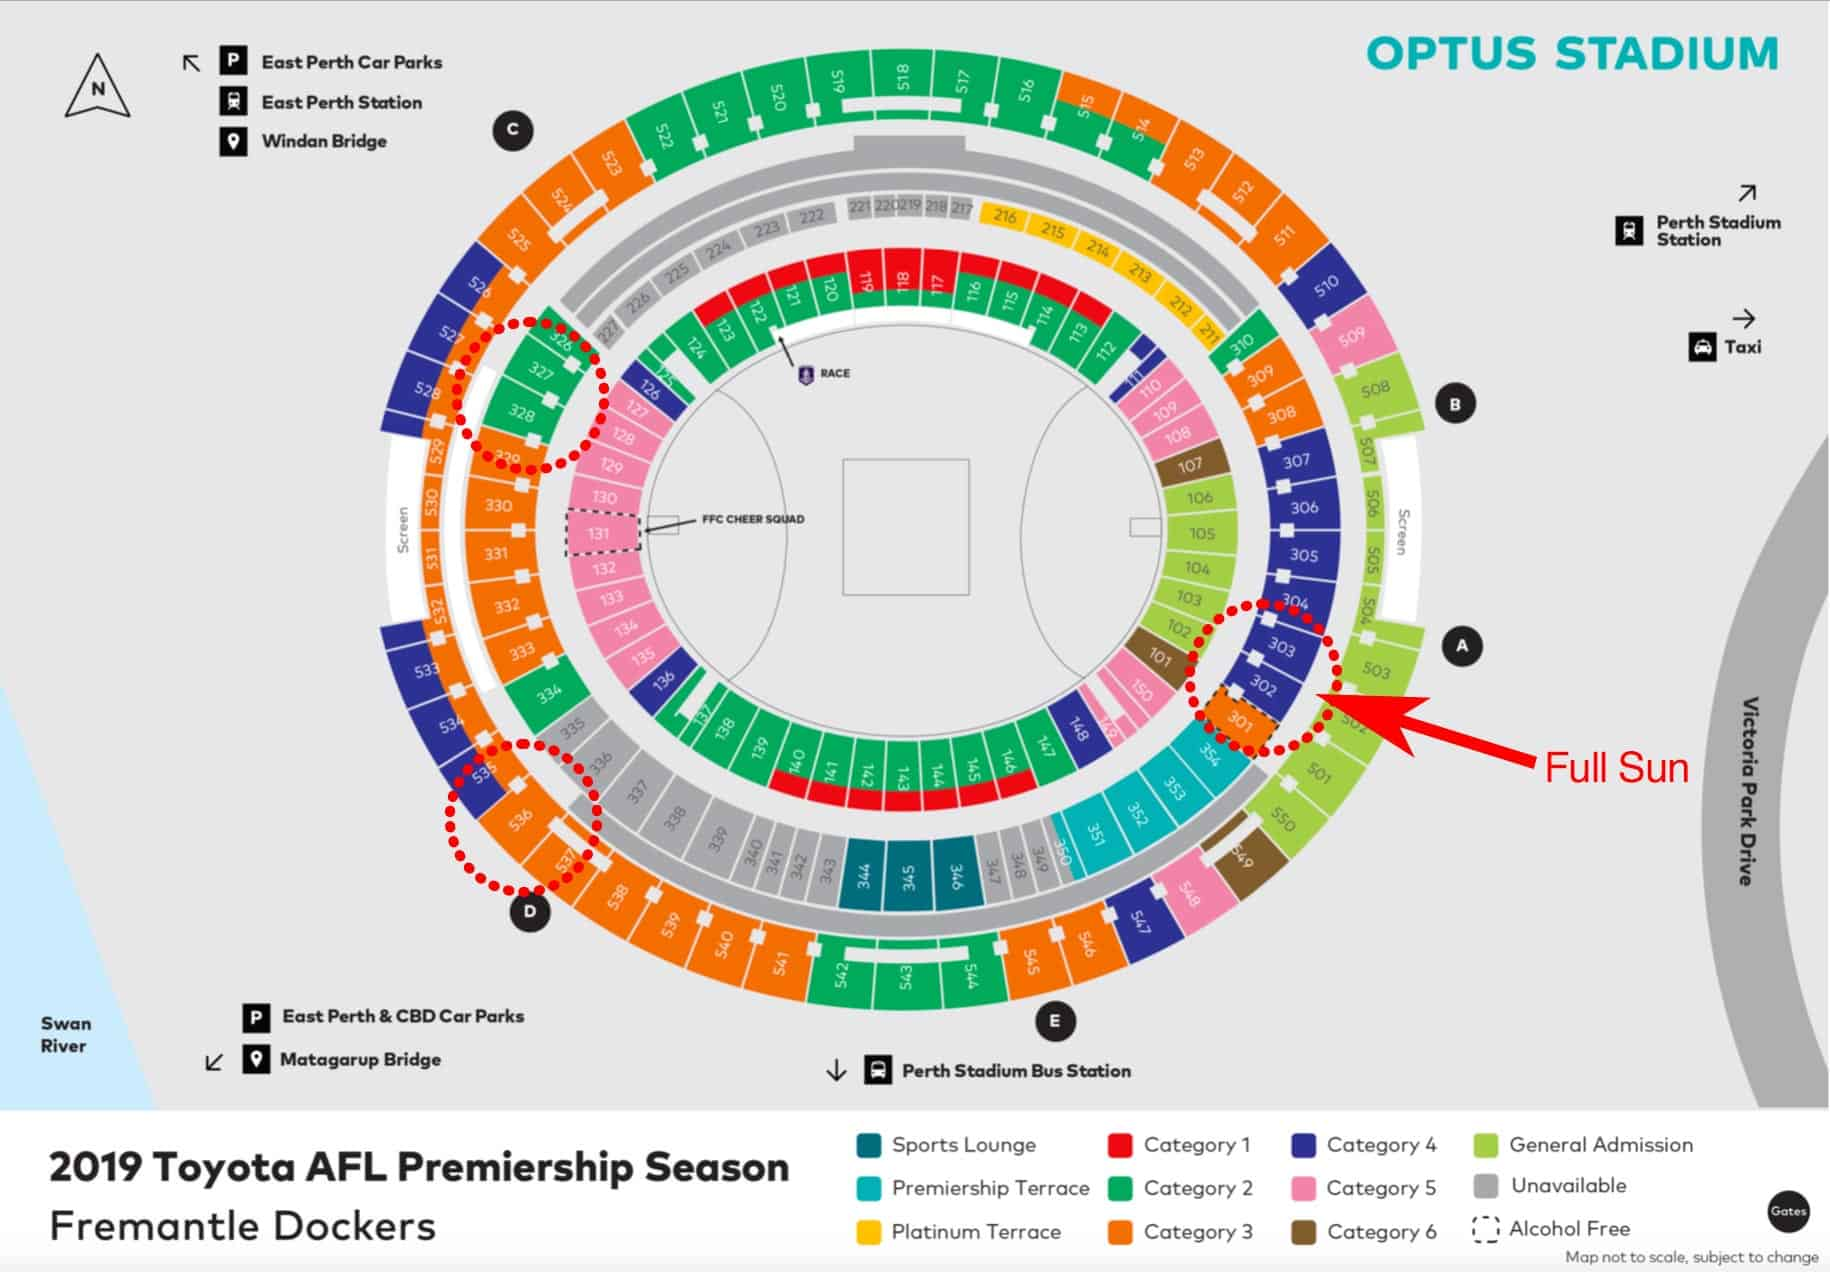 Optus Stadium Map - Fremantle Dockers